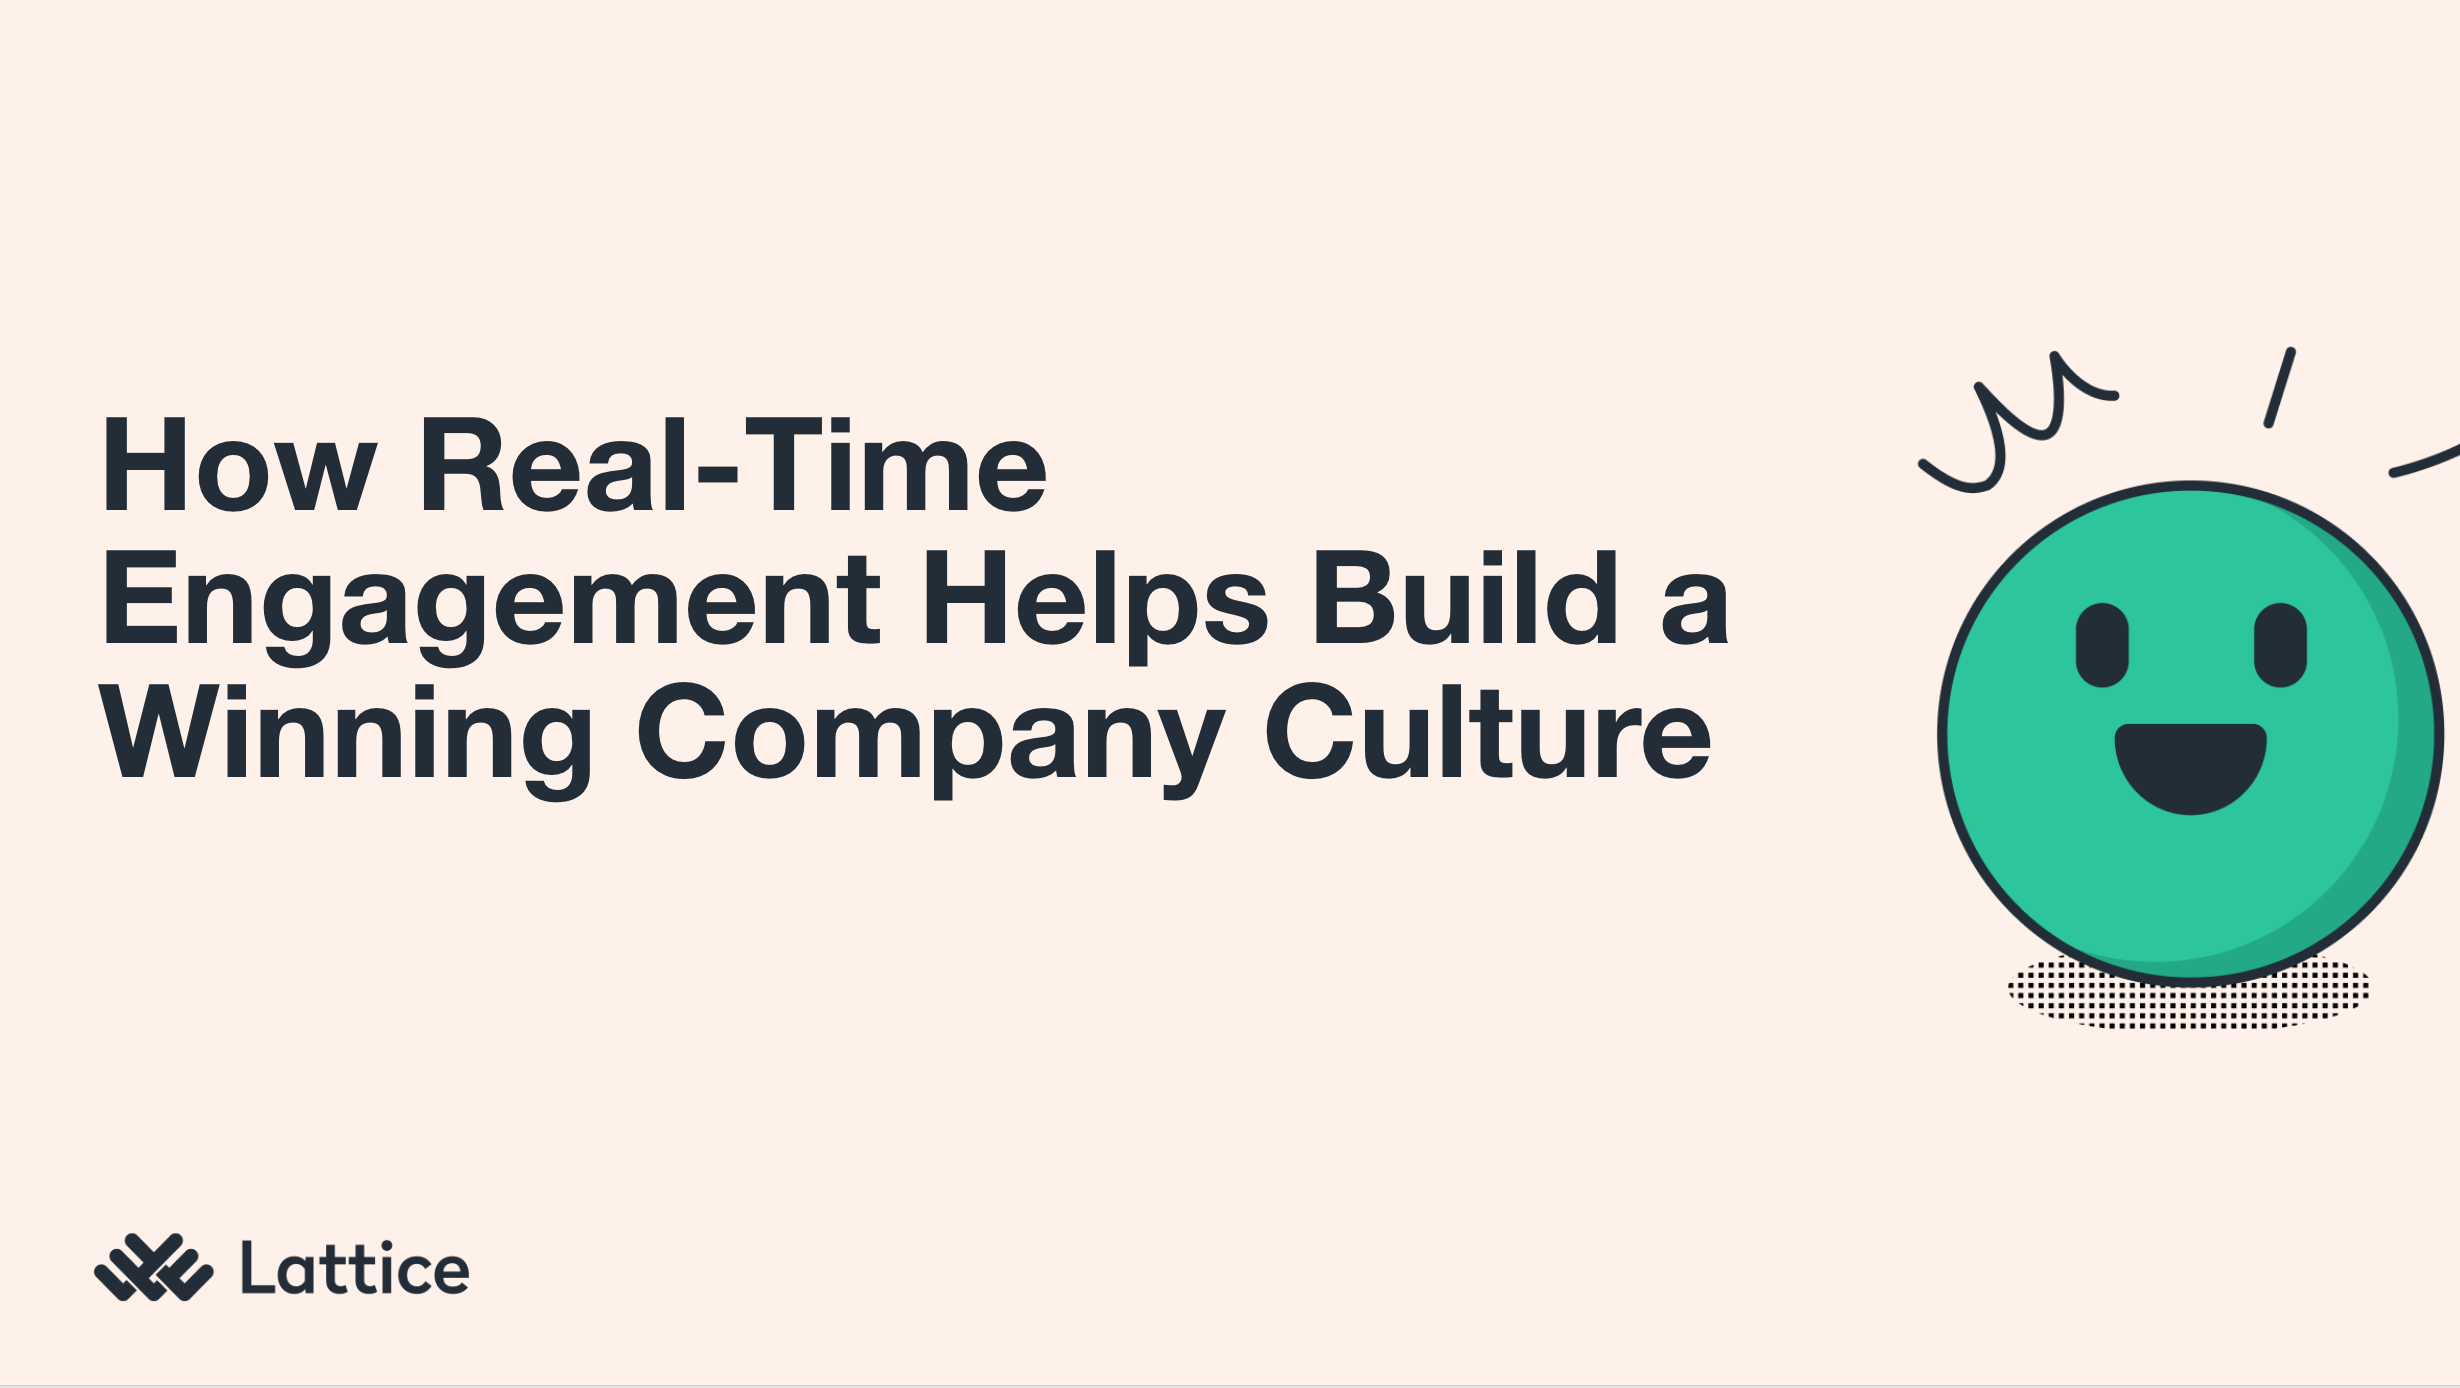 How to Use Real-Time Engagement to Build a Winning Culture